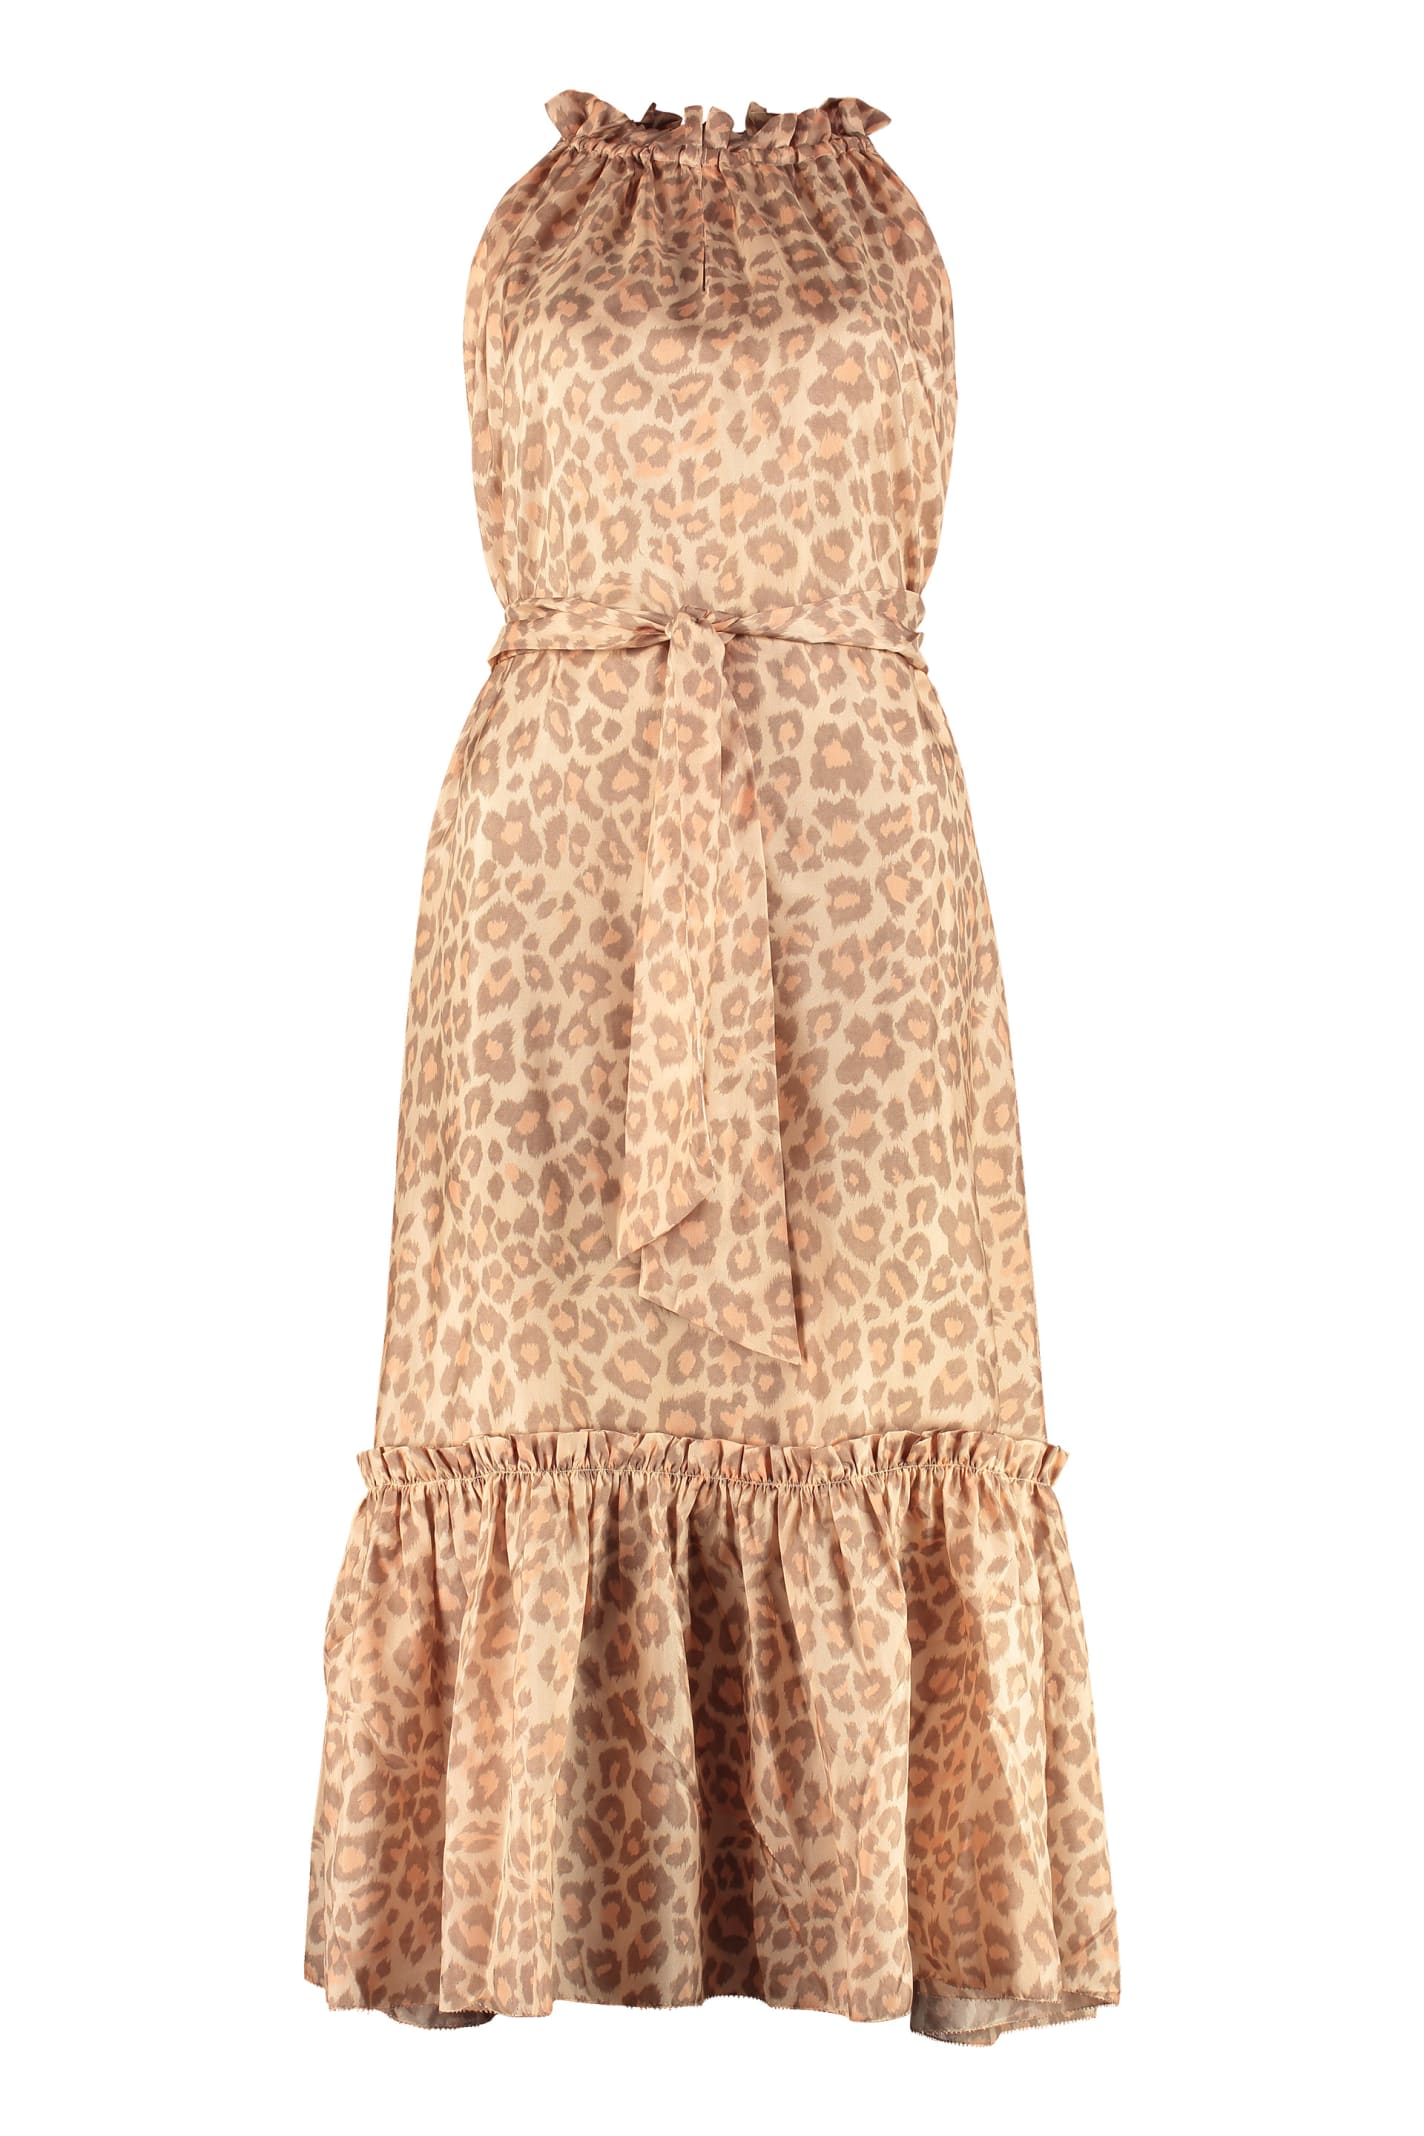 Buy Zimmermann Kirra Printed Dress With Wrinkles online, shop Zimmermann with free shipping